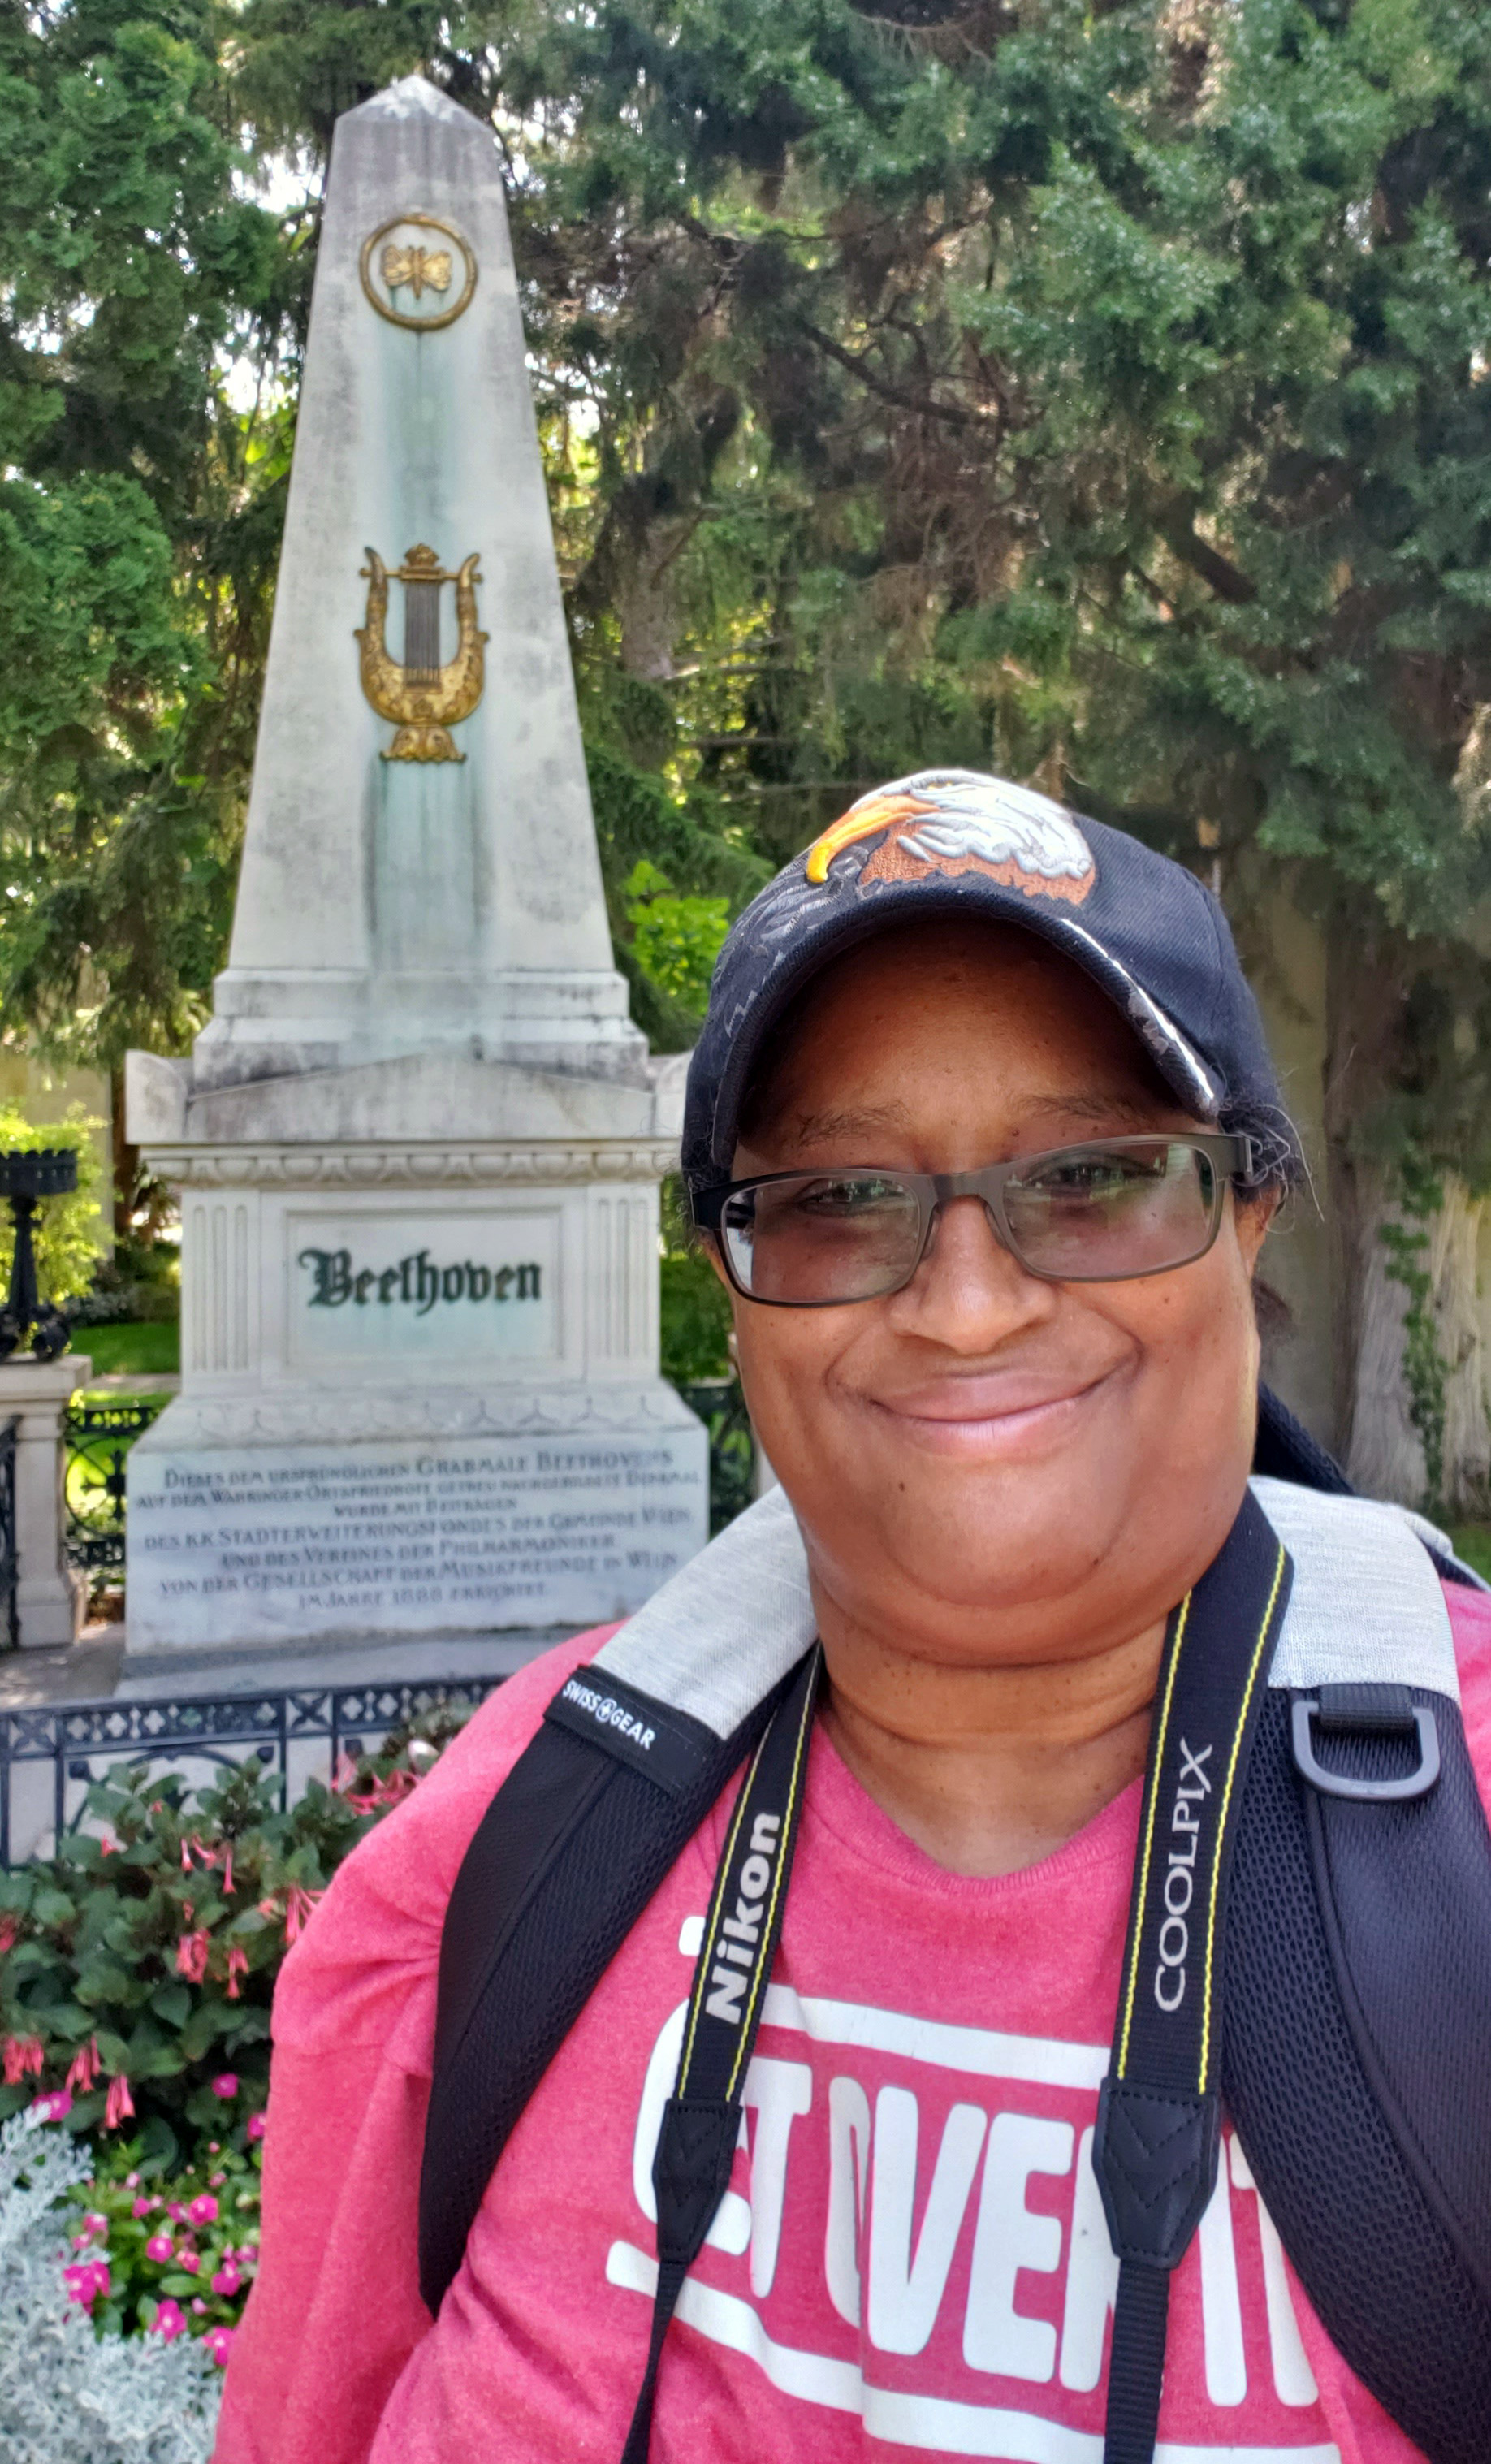 I'm smiling because I found Beethoven's grave at Wiener Zentralfriedhof